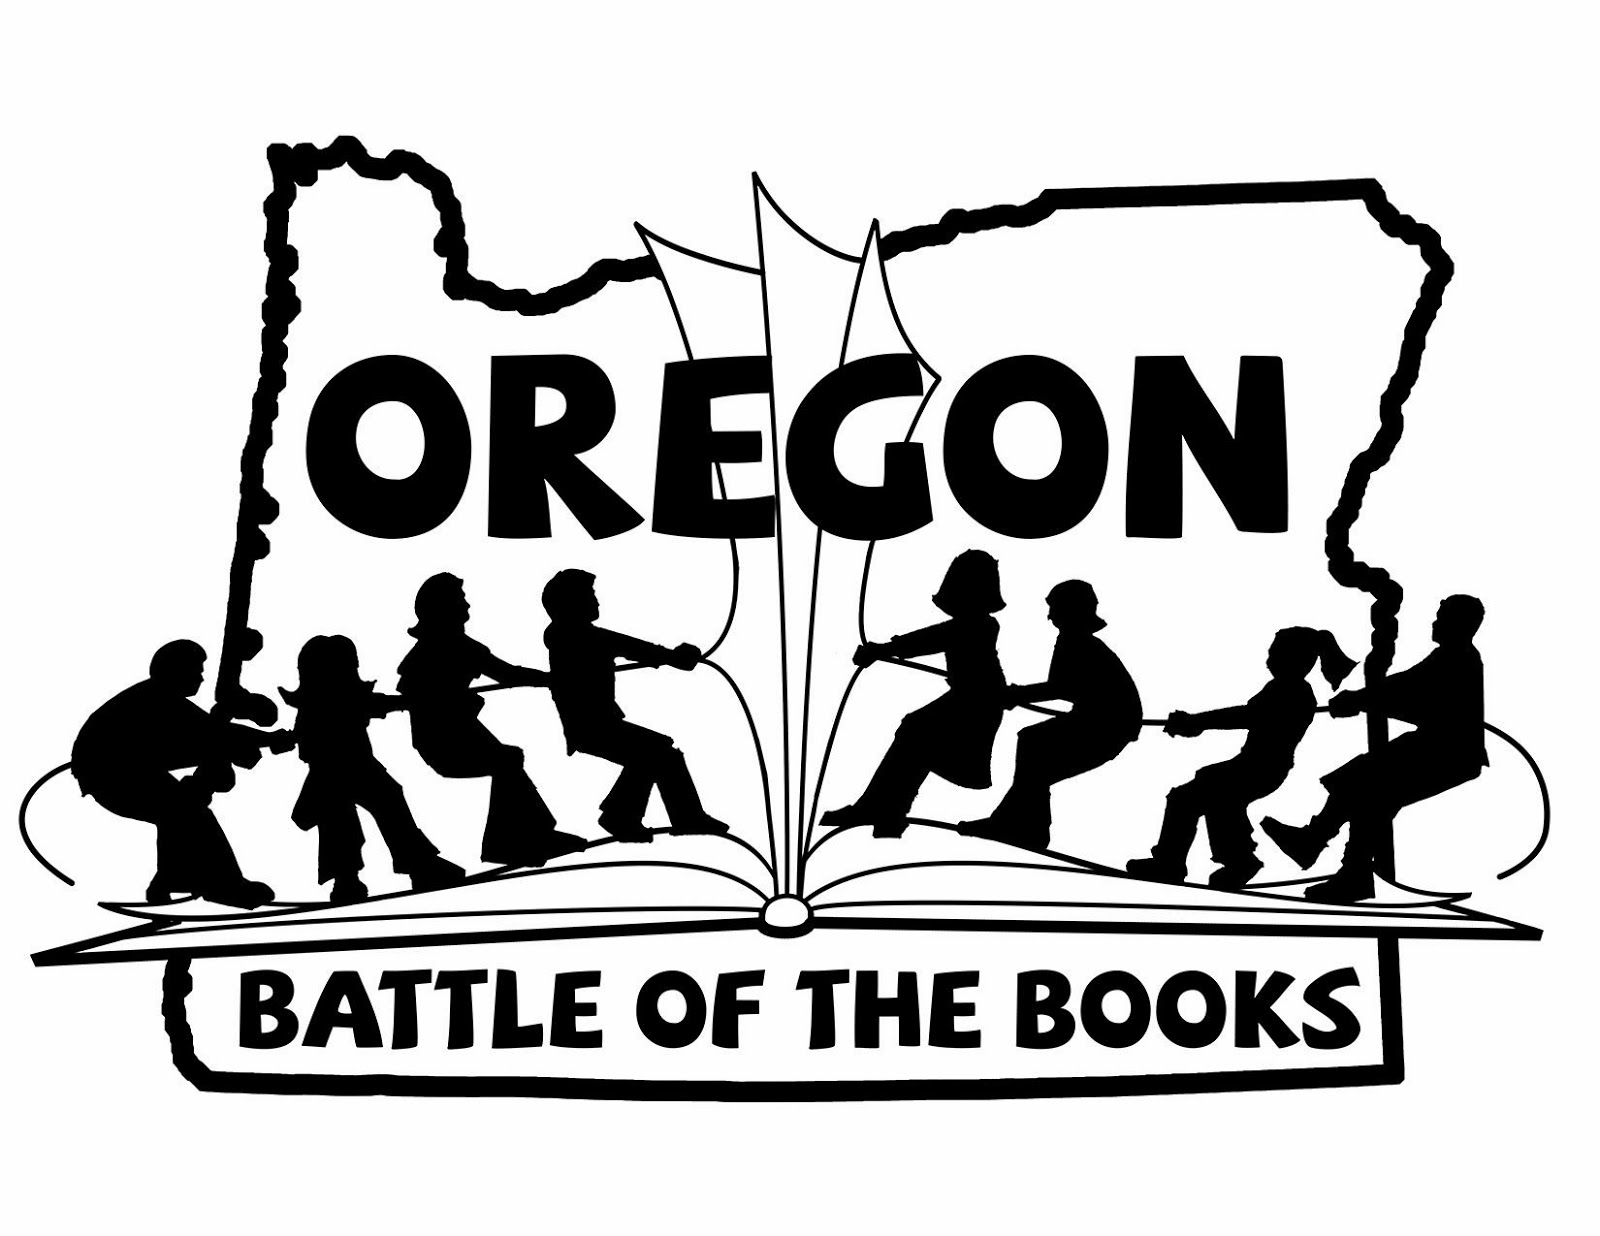 Logo for Oregon Battle of the Books: Two teams of four students stand on an open book, playing tug-of-war across the book's gutter. The image is superimposed on top of an outline of the state of Oregon.